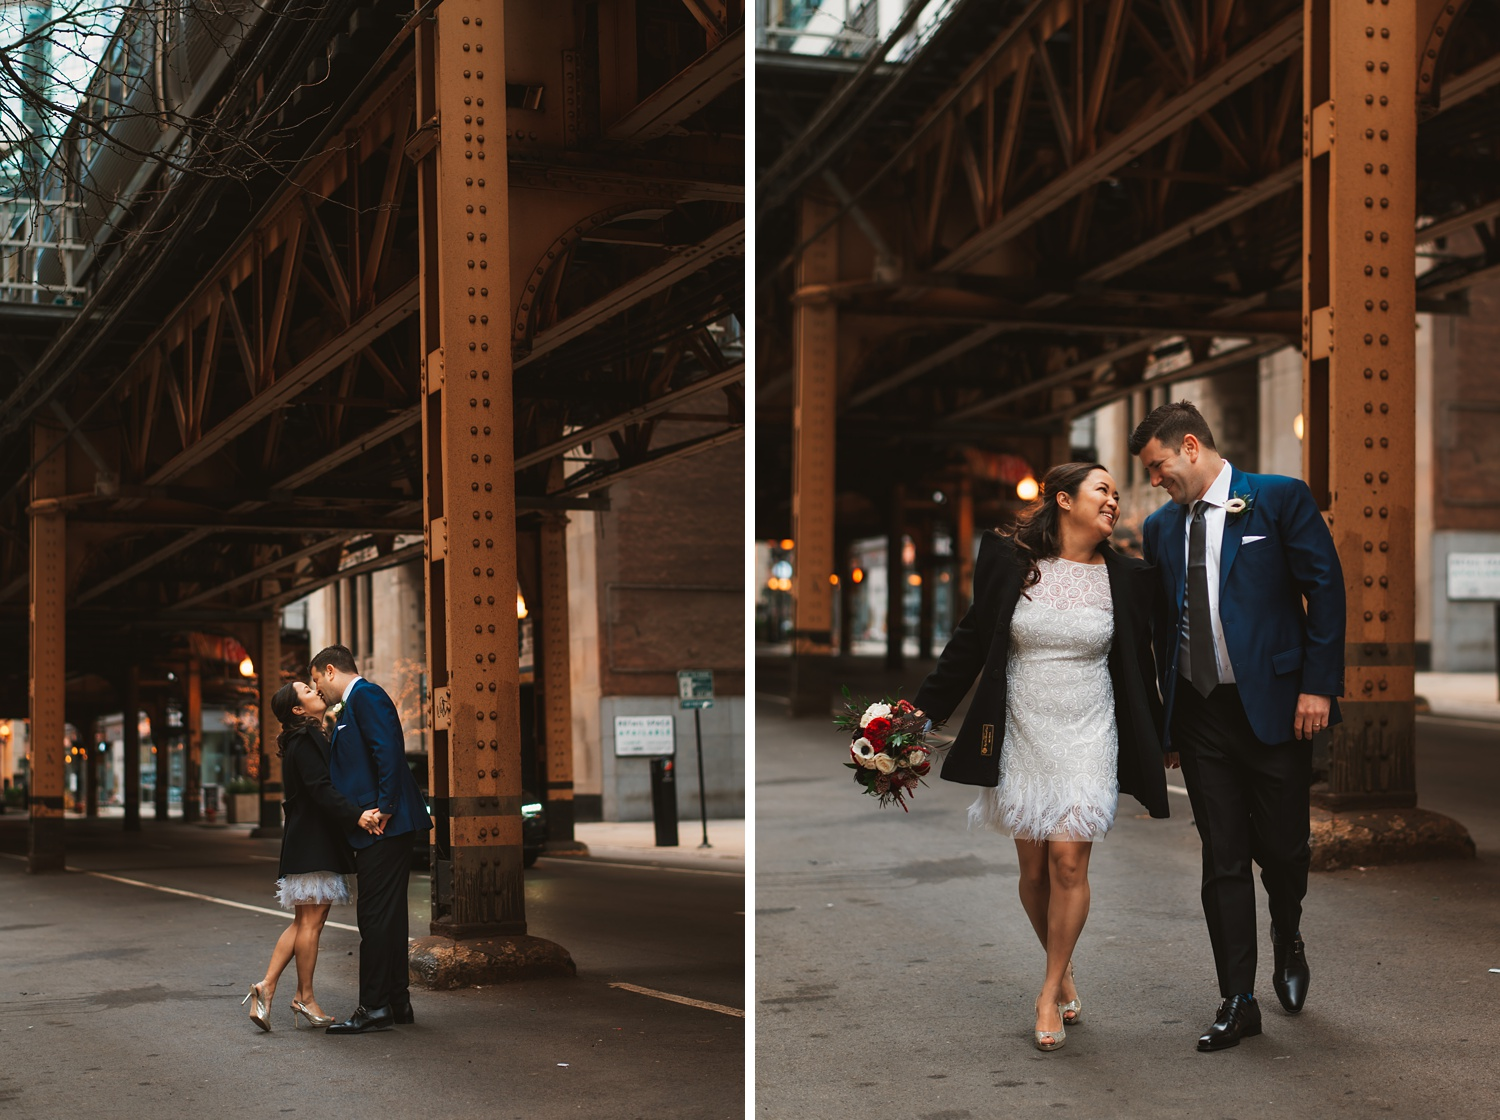 Chicago Courthouse Elopement wedding - The Adamkovi, city hall, photos in the loop area